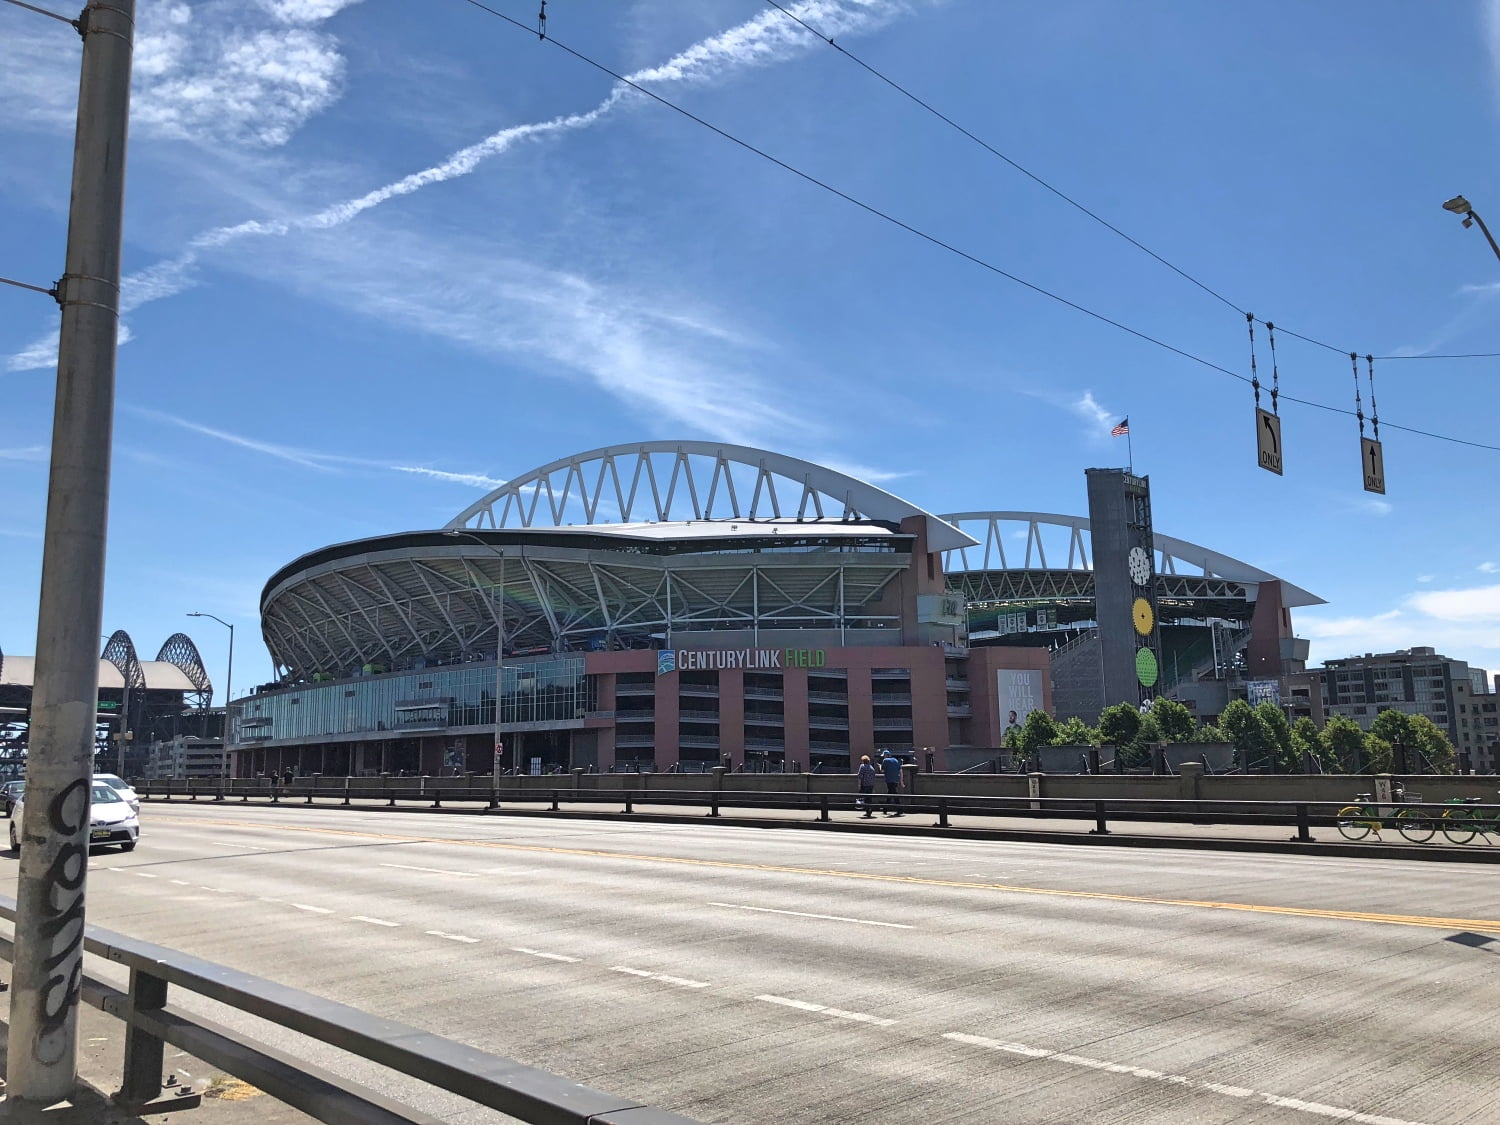 Century Link Field in Seattle 2018 (Outside View)